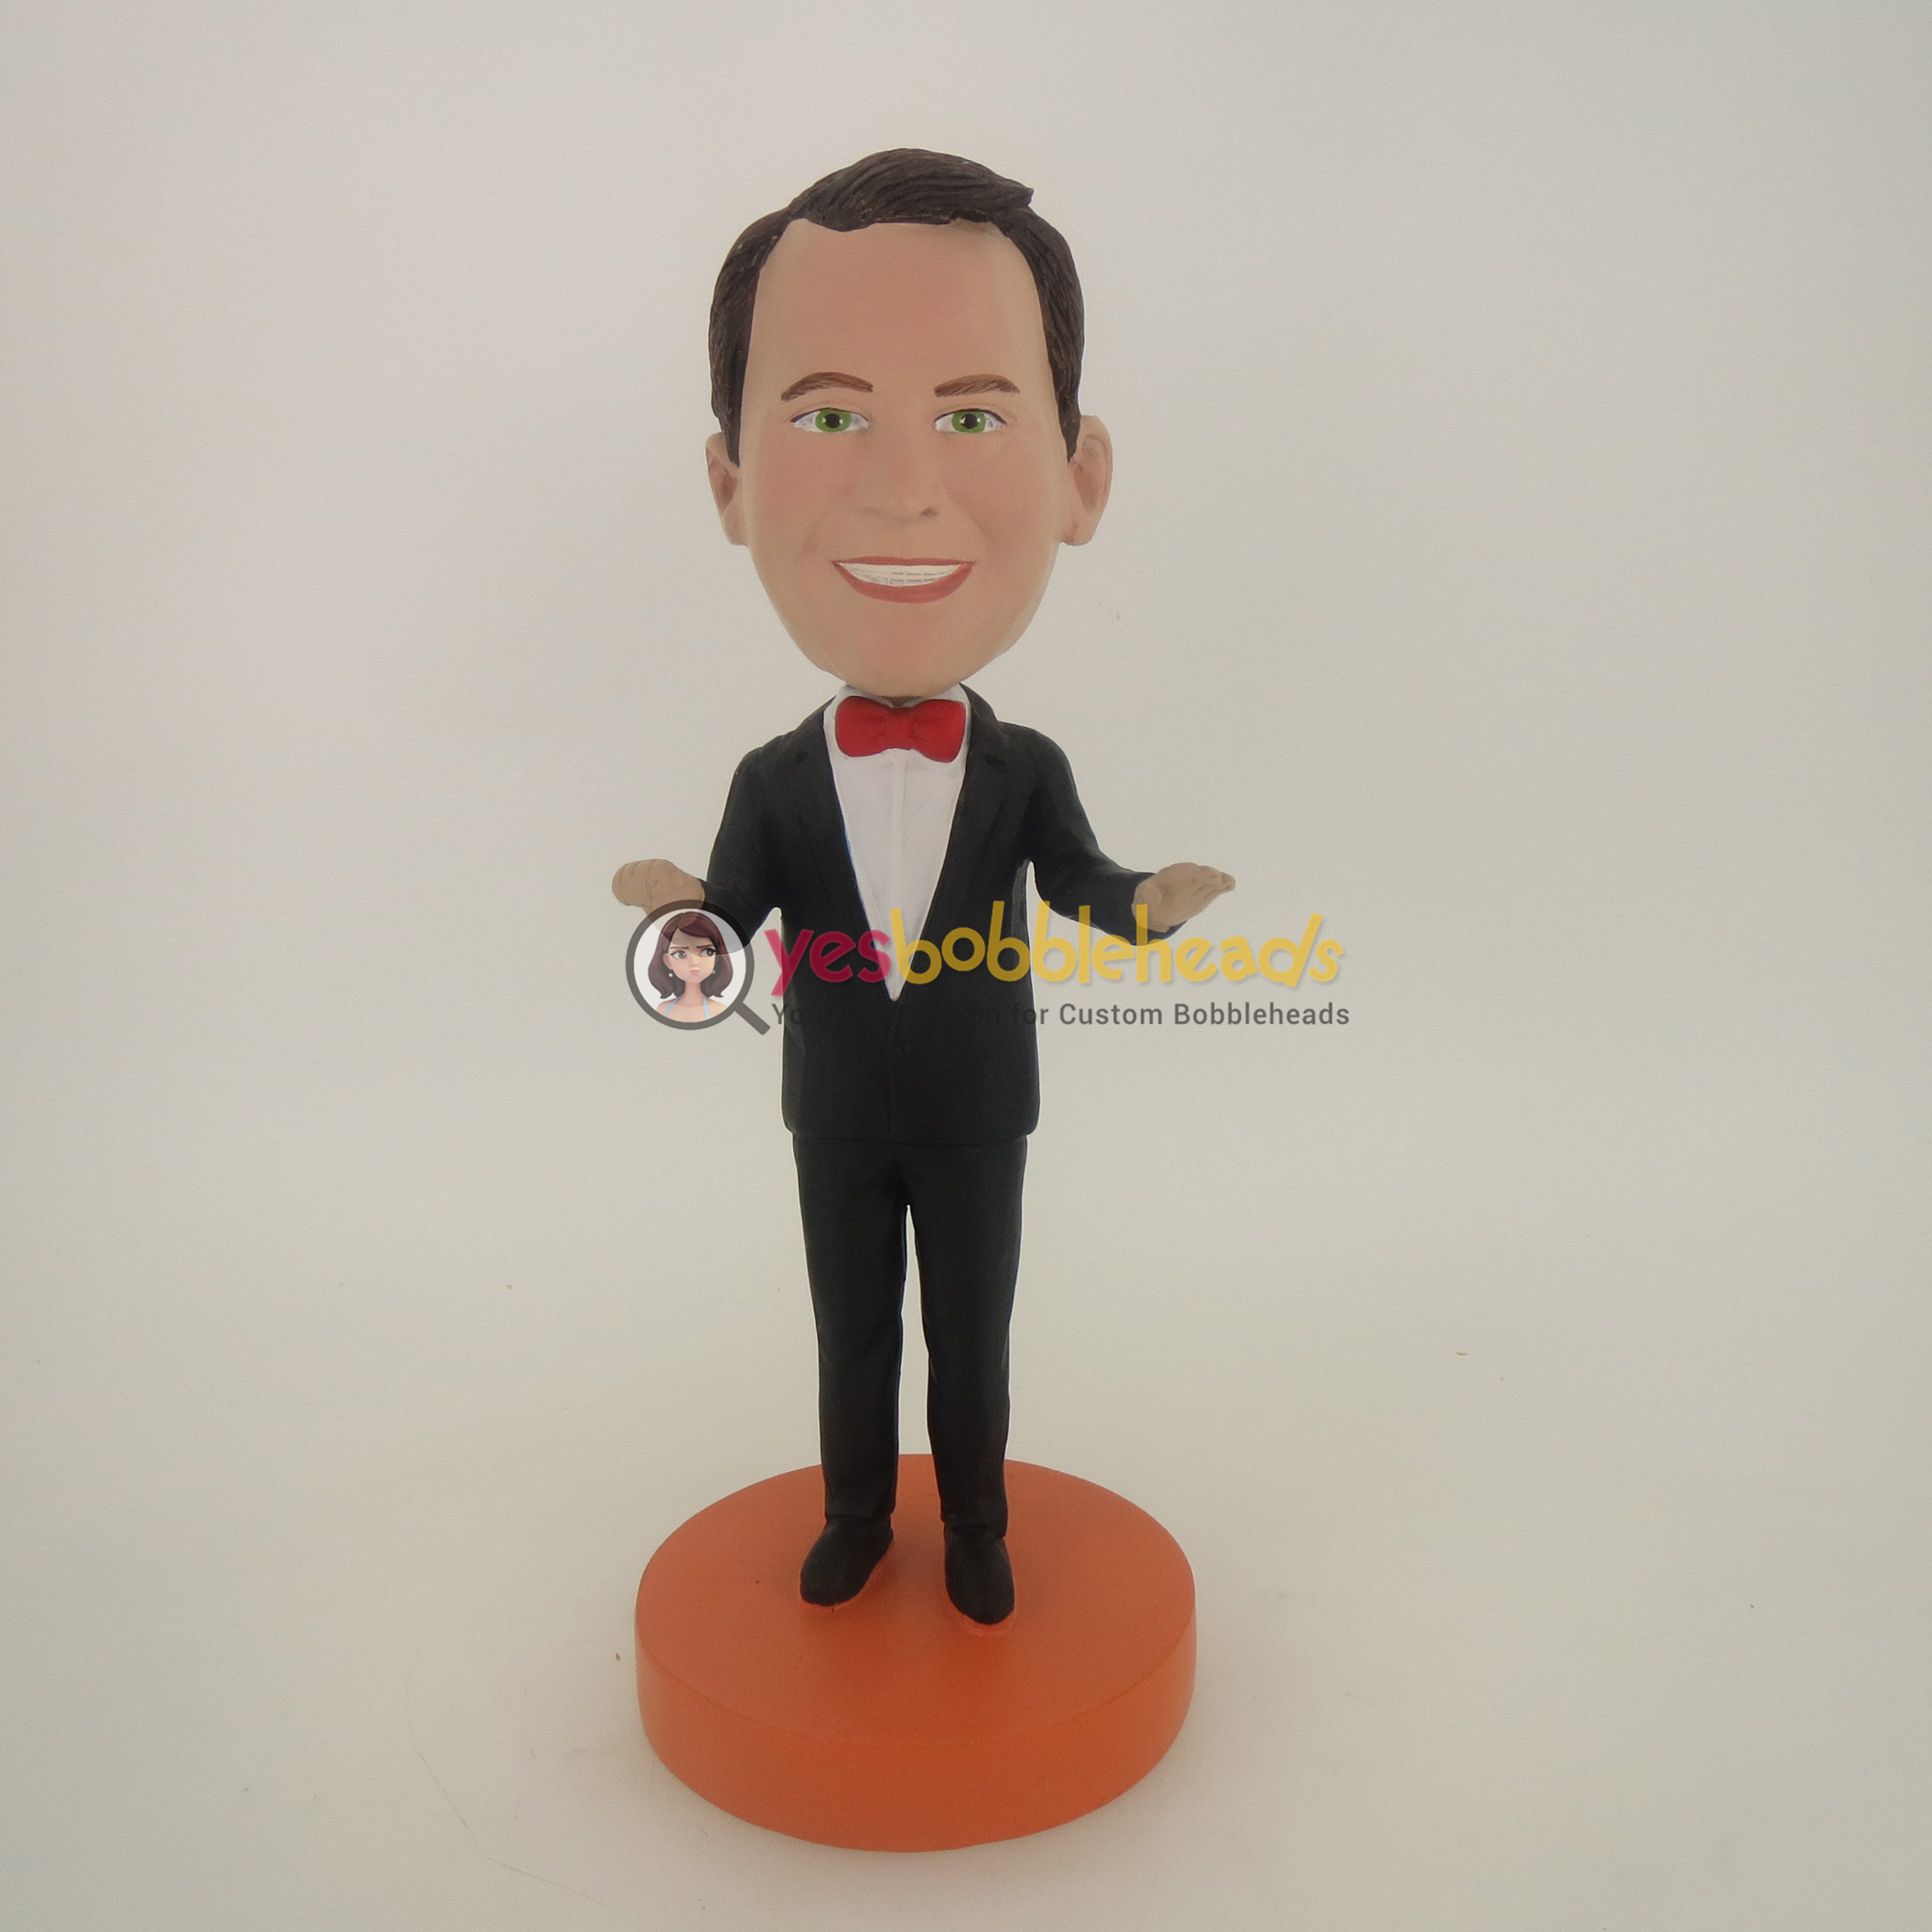 Picture of Custom Bobblehead Doll: Welcoming Man In Black Suit